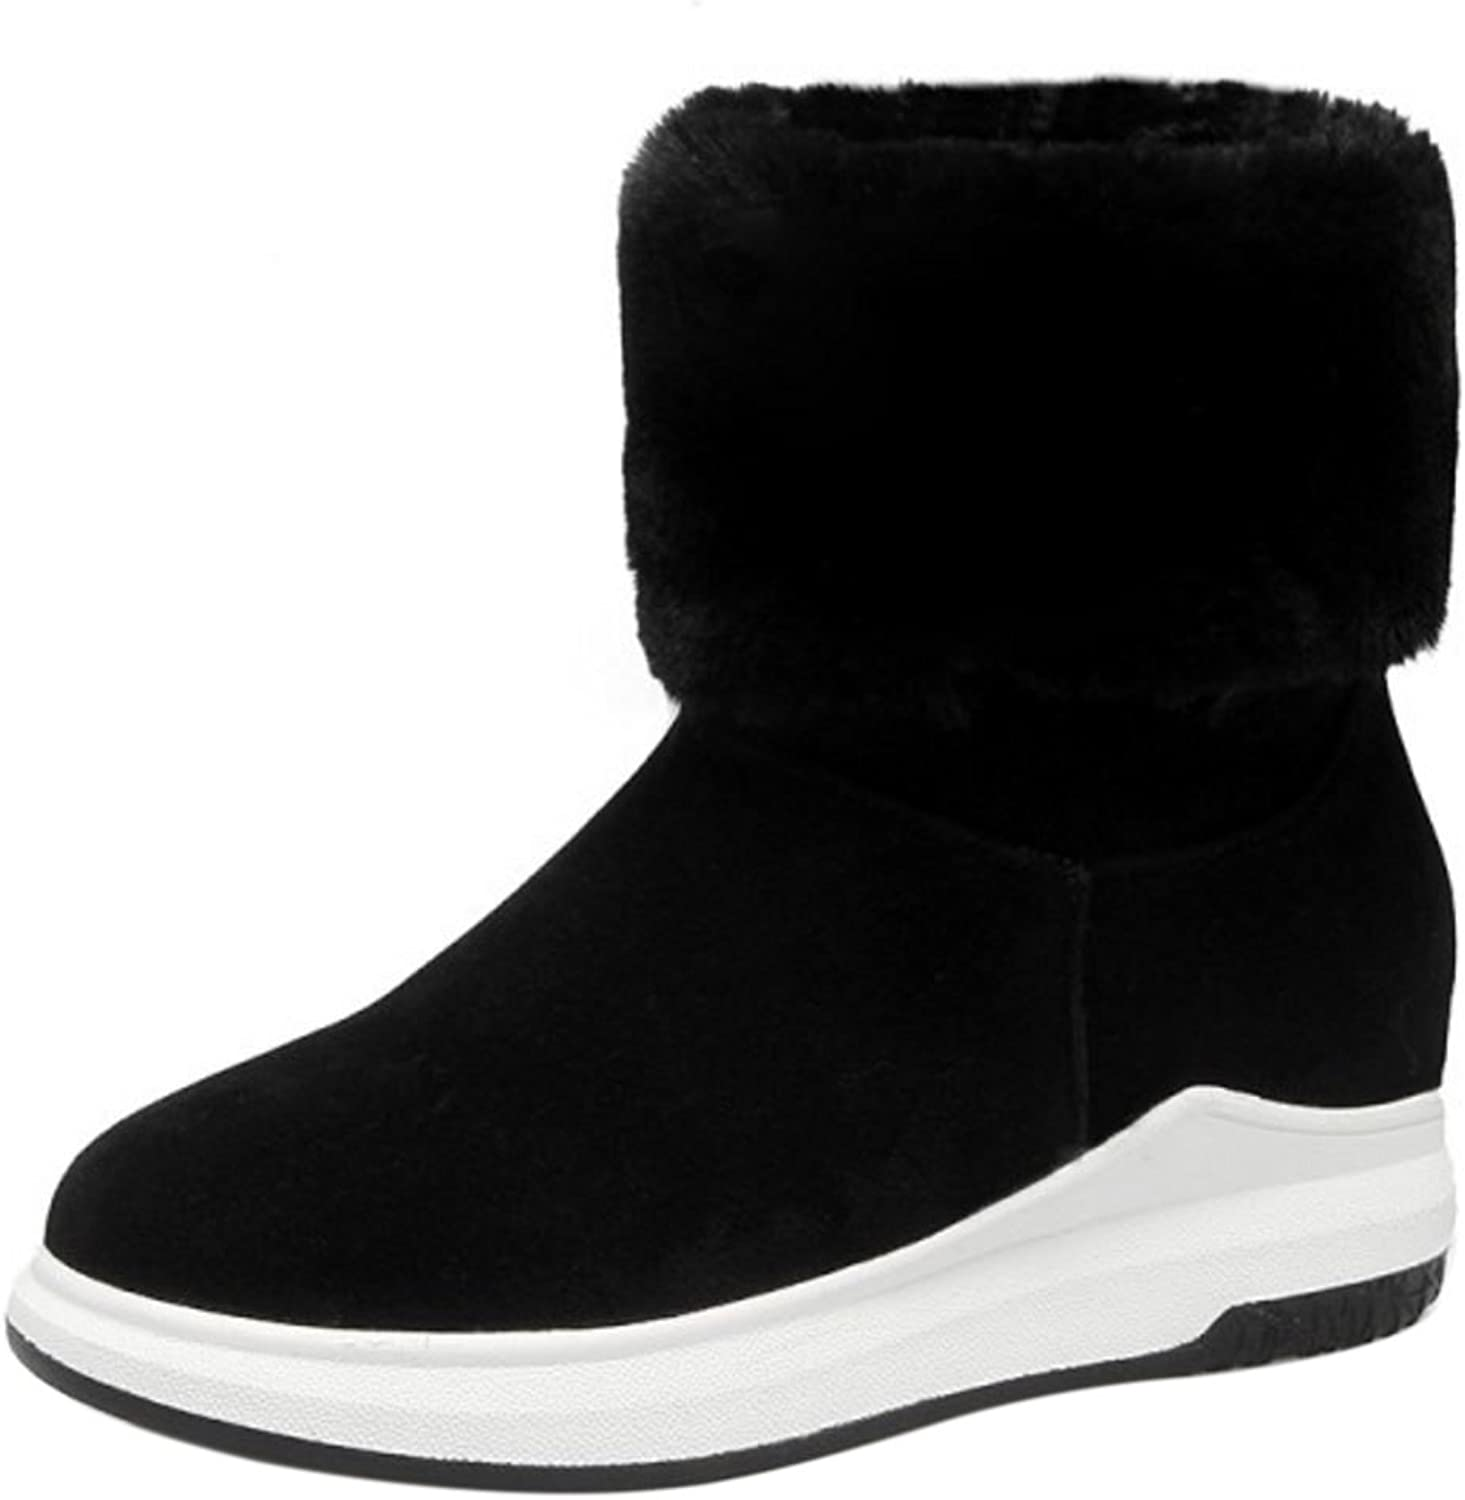 FANIMILA Women Boots Pull On Thick Sole